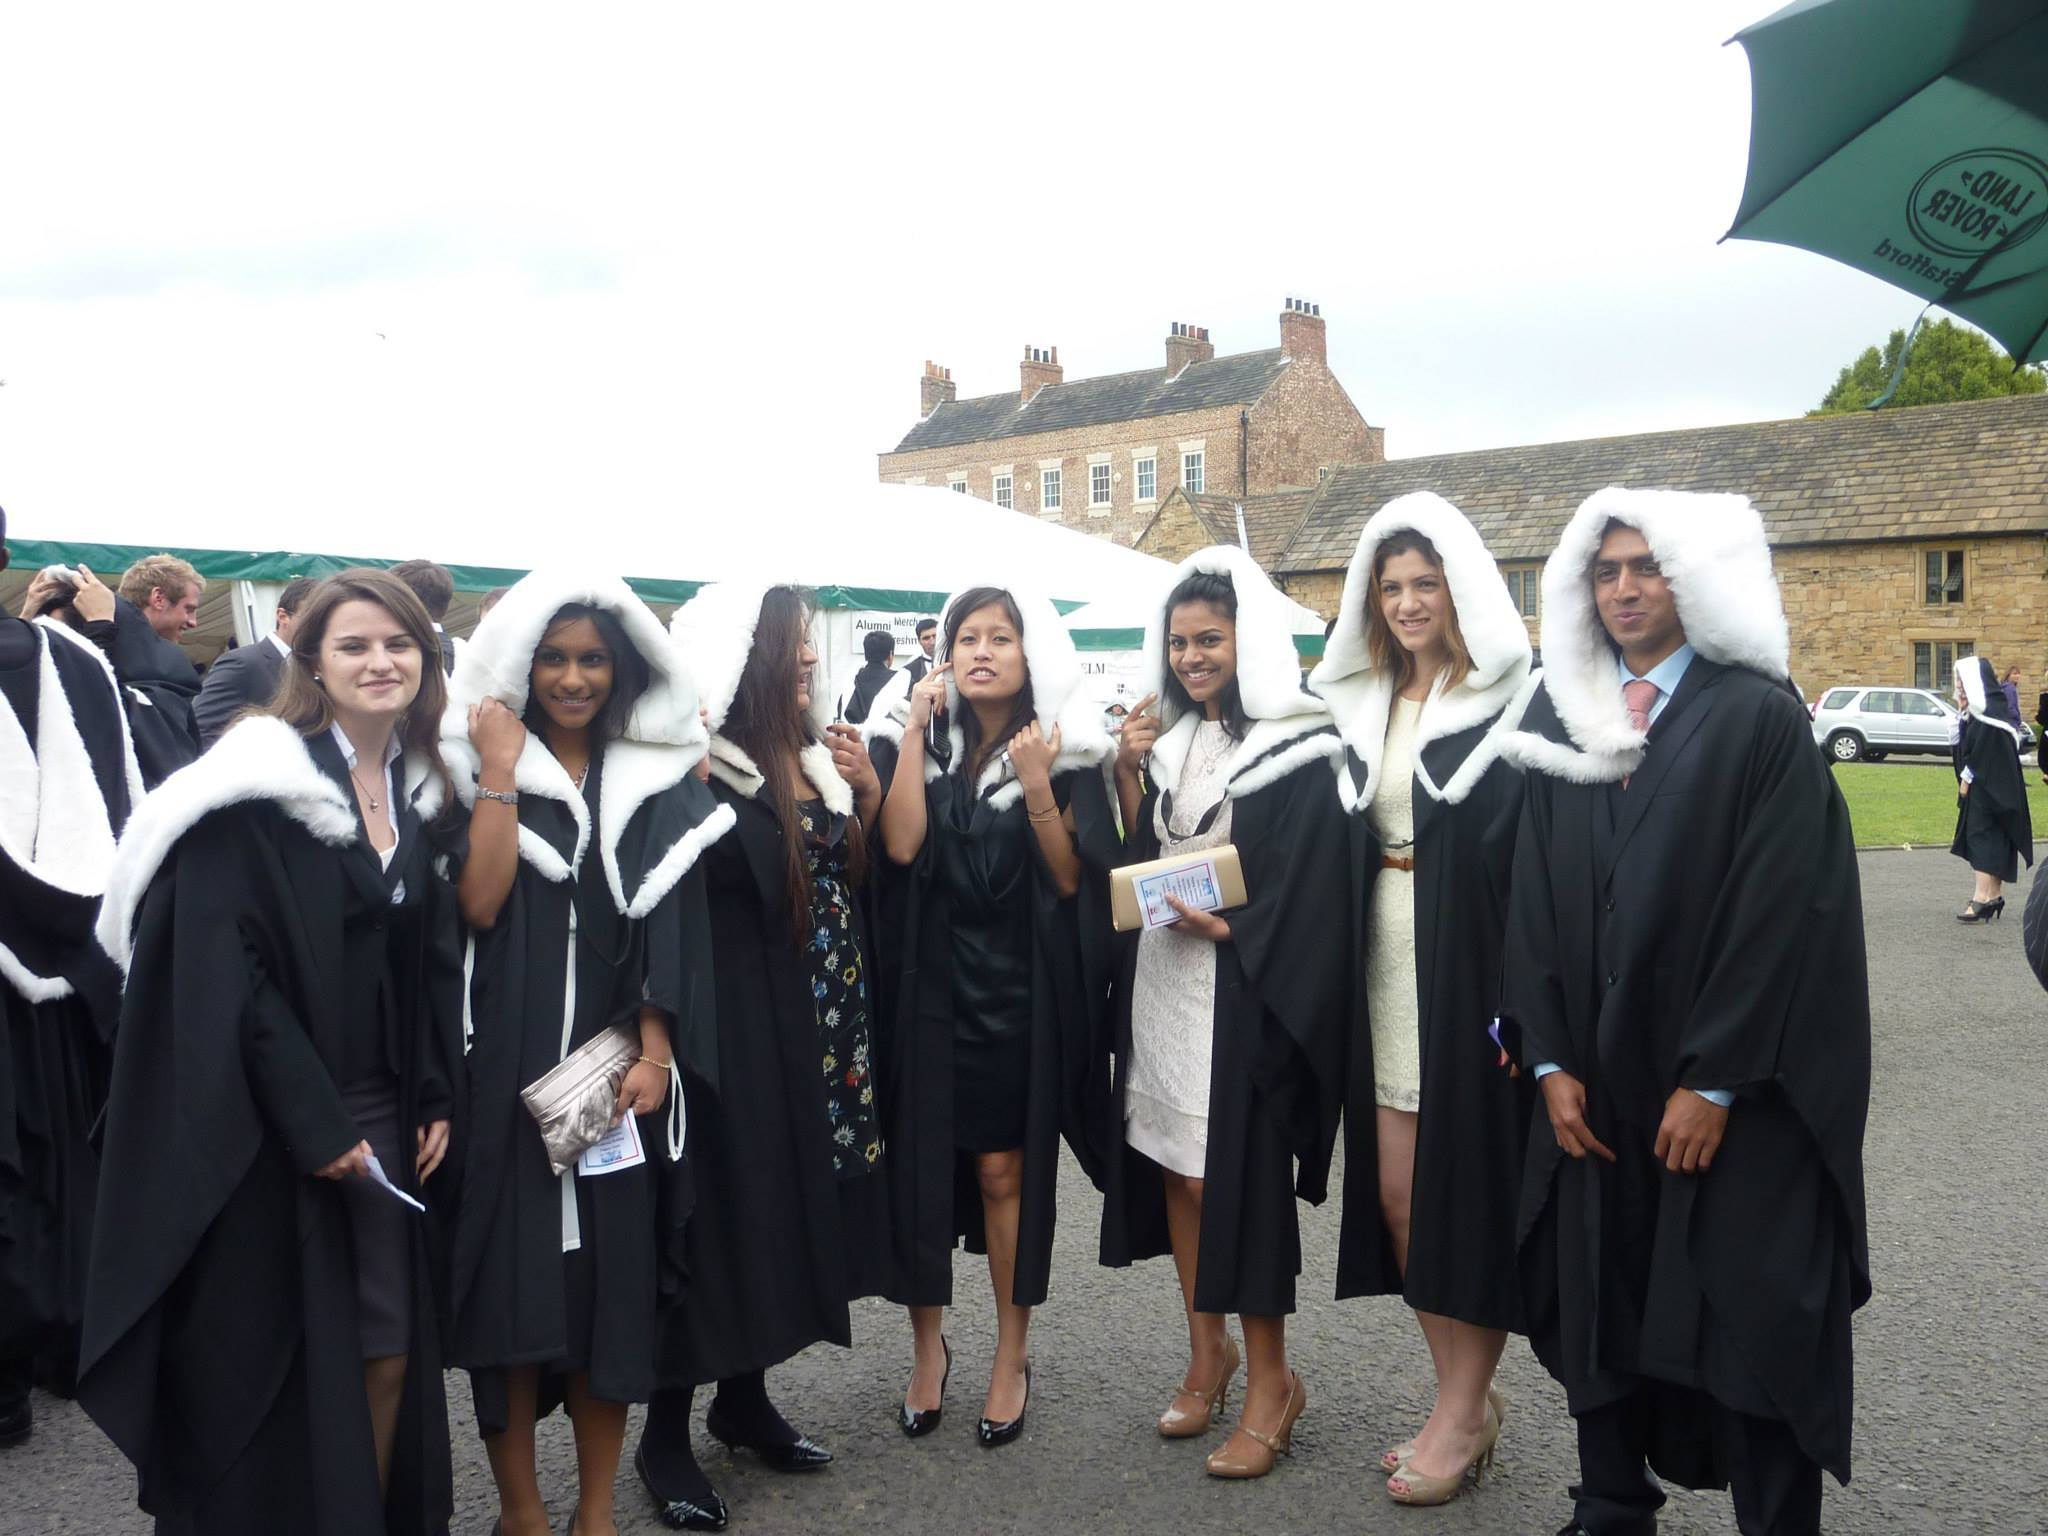 Students at Graduation in 2010